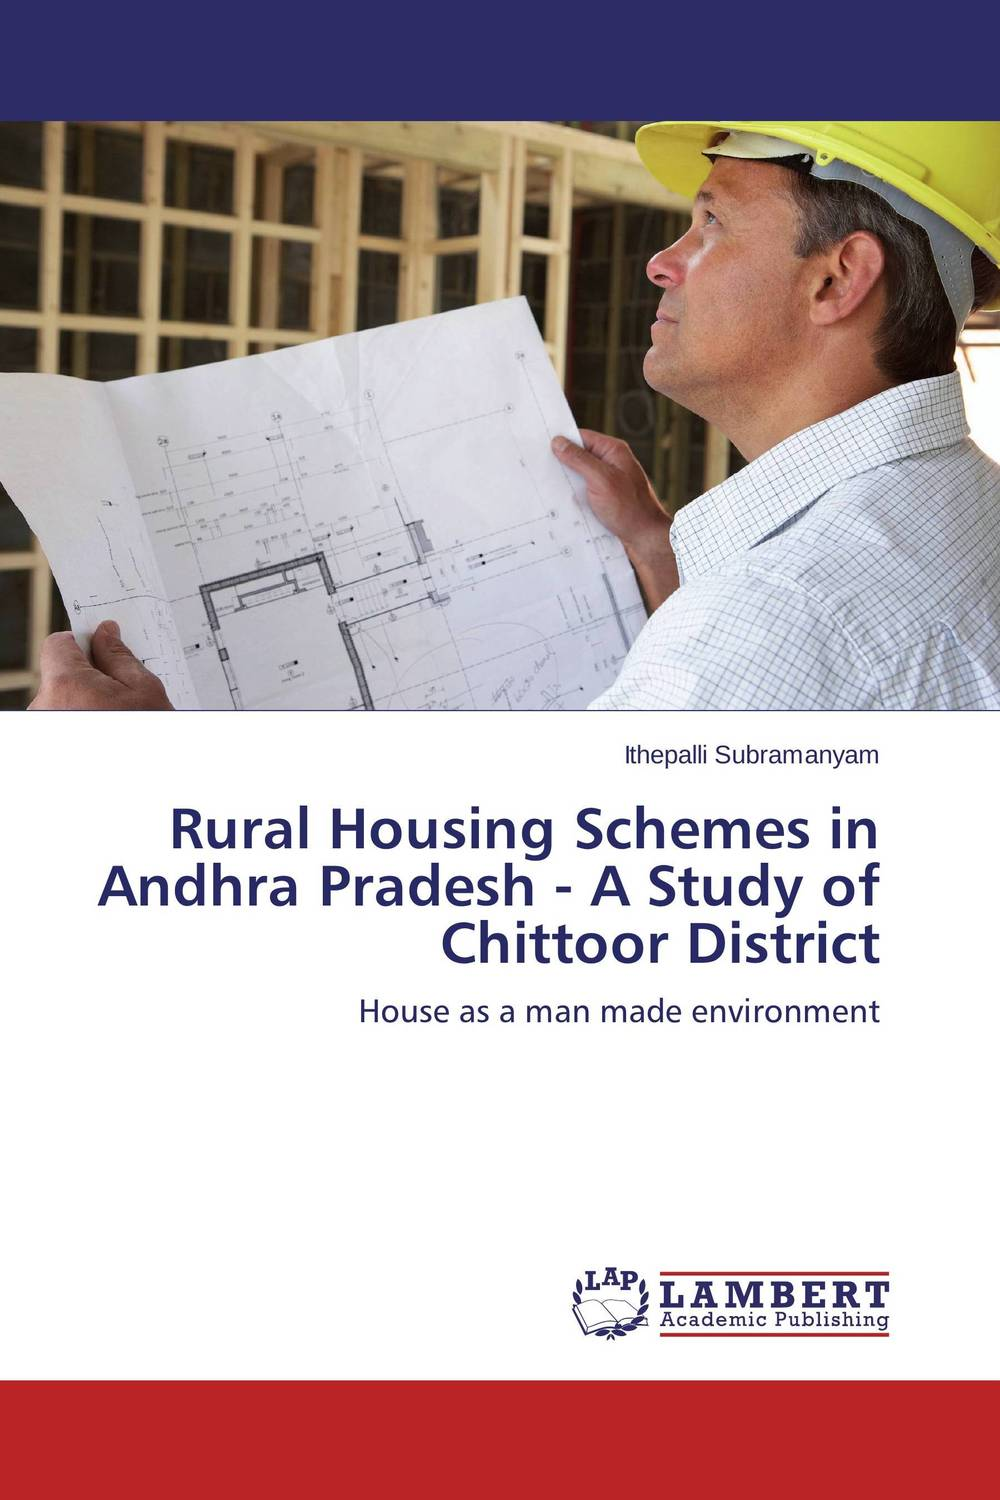 Rural Housing Schemes in Andhra Pradesh - A Study of Chittoor District встраиваемый светильник lago 357315 novotech 1112634